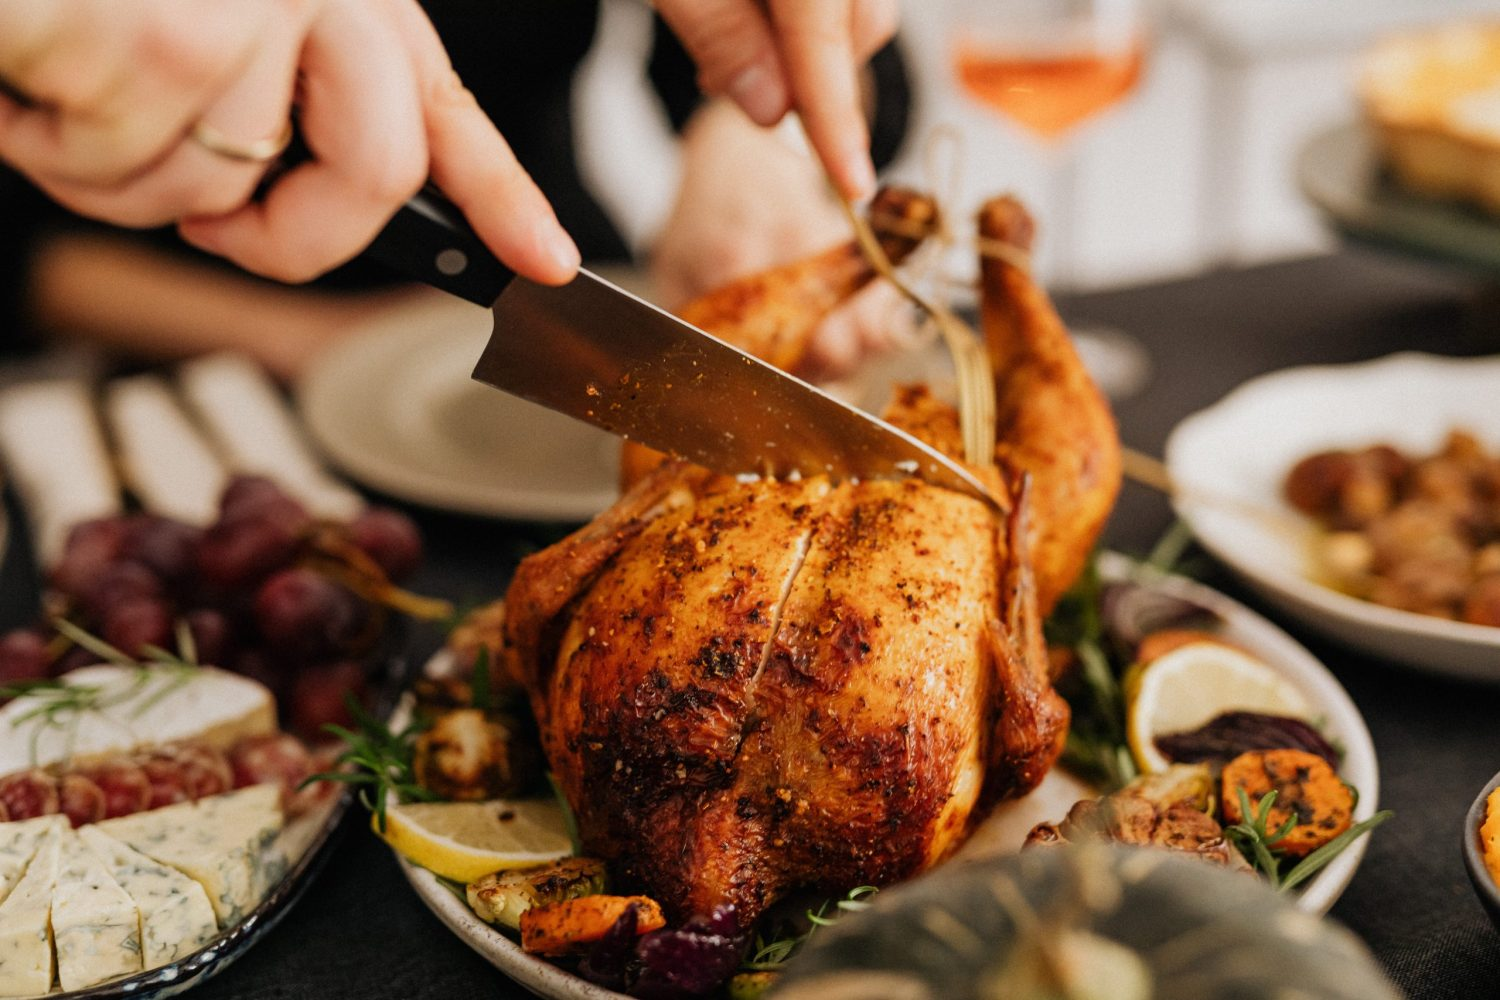 Image of person carving a chicken